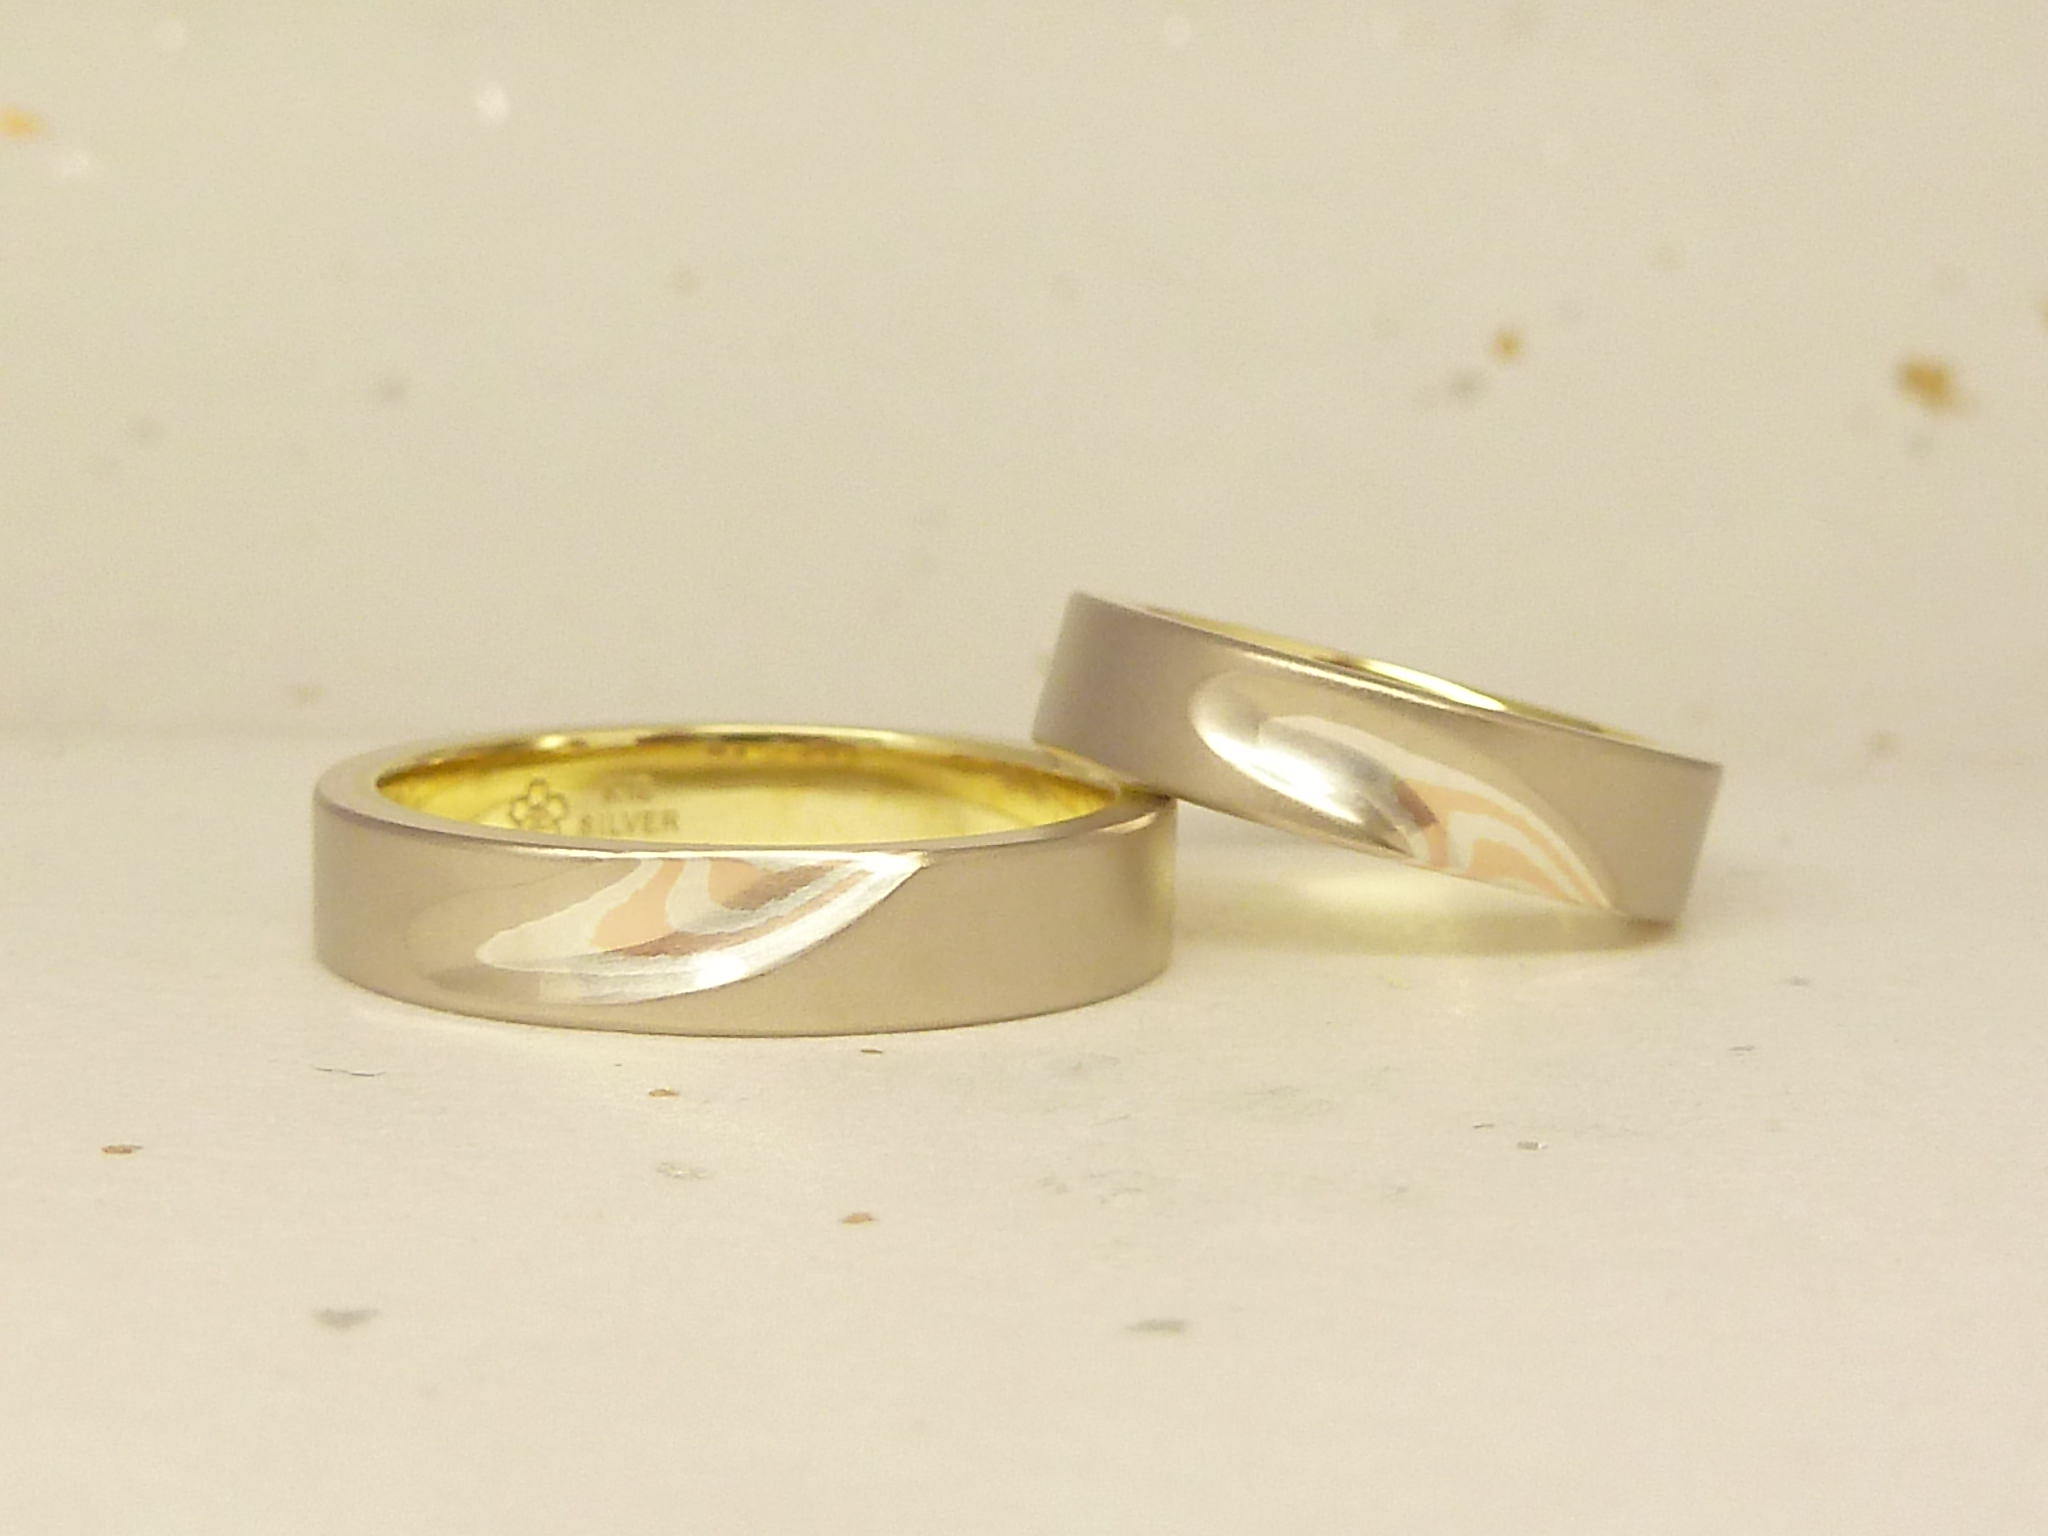 From Mokumeganeya Customer Mokumeganeya Vip Wedding Band And